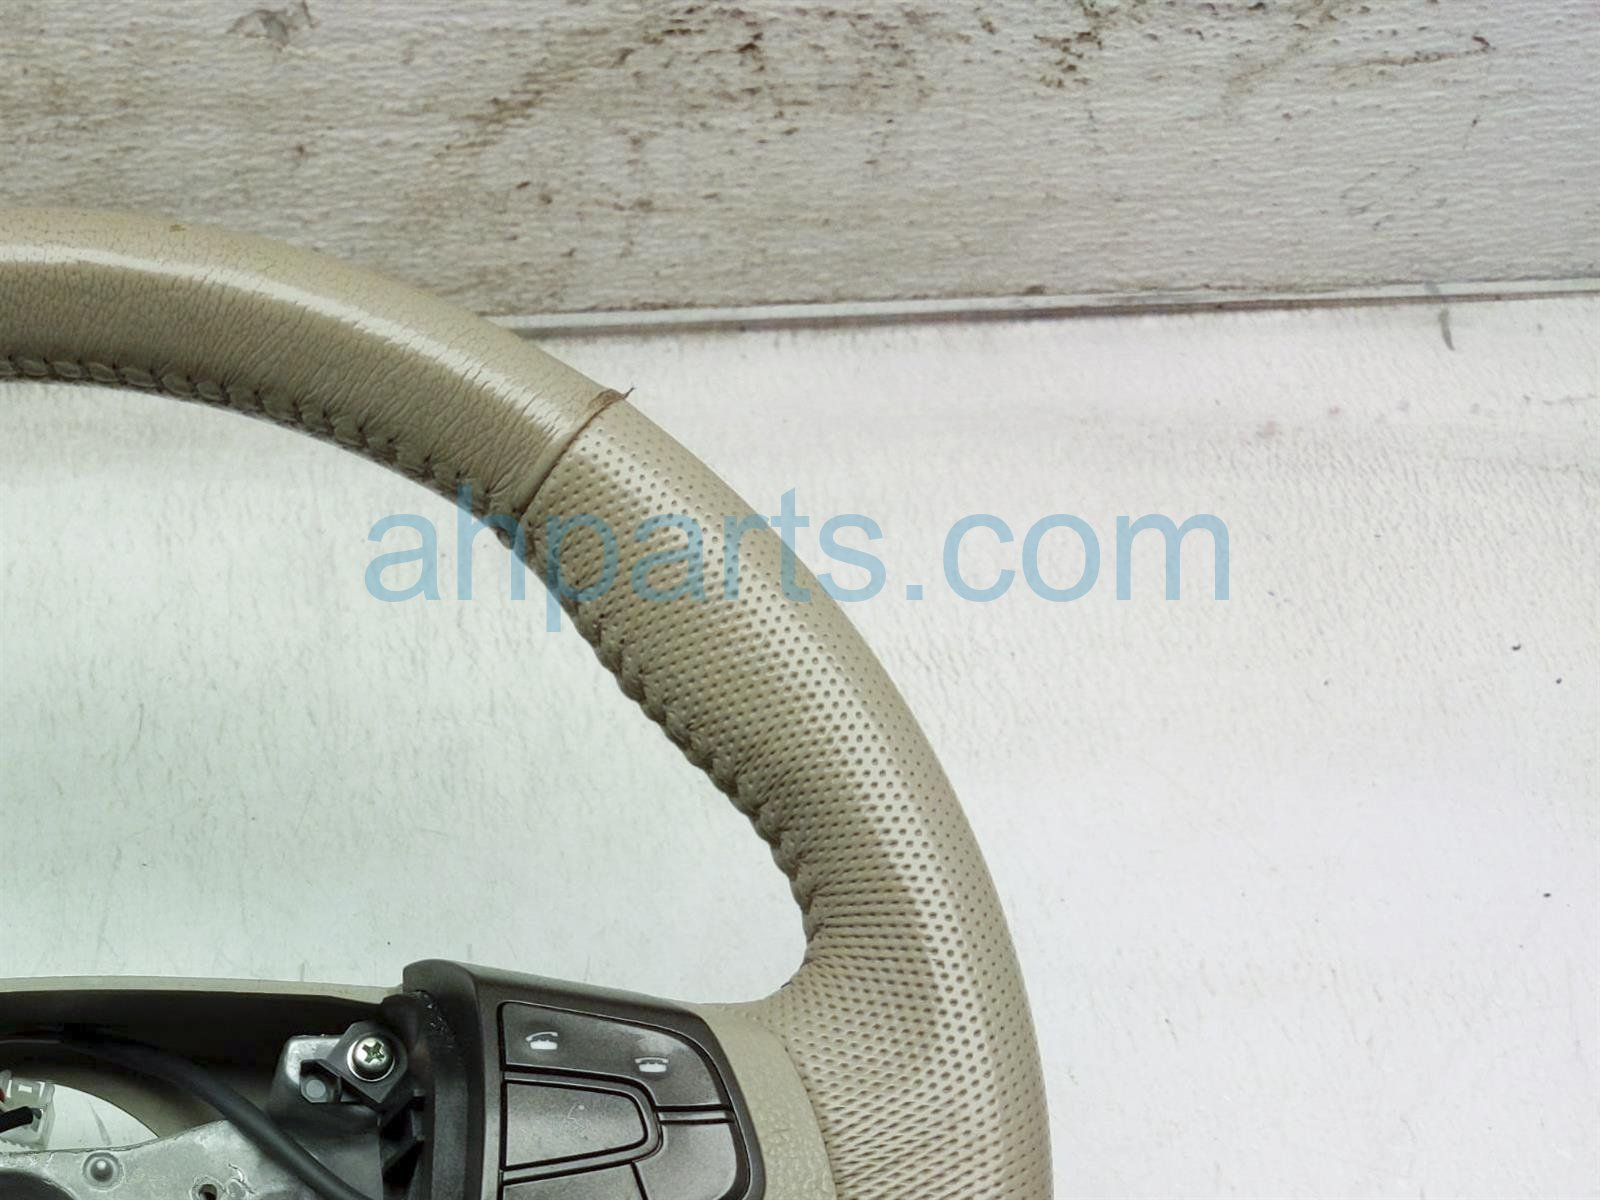 2013 Toyota Sienna Steering Wheel   Tan Leather 45100 08220 E0 Replacement